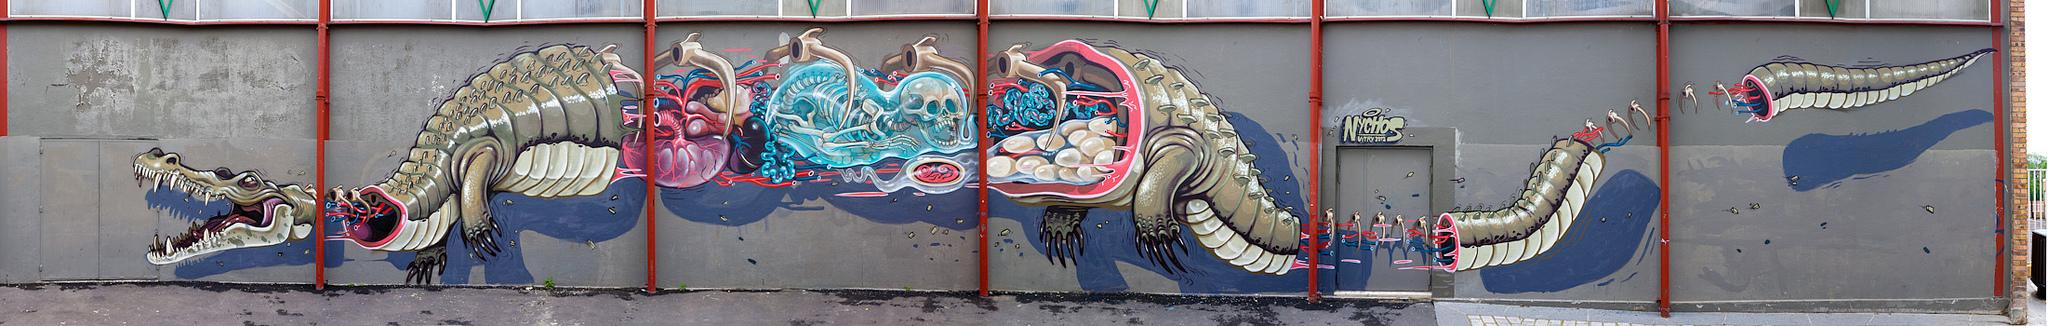 All sizes | Nychos @ Paris (close by) - Mai 2012 | Flickr - Photo Sharing!